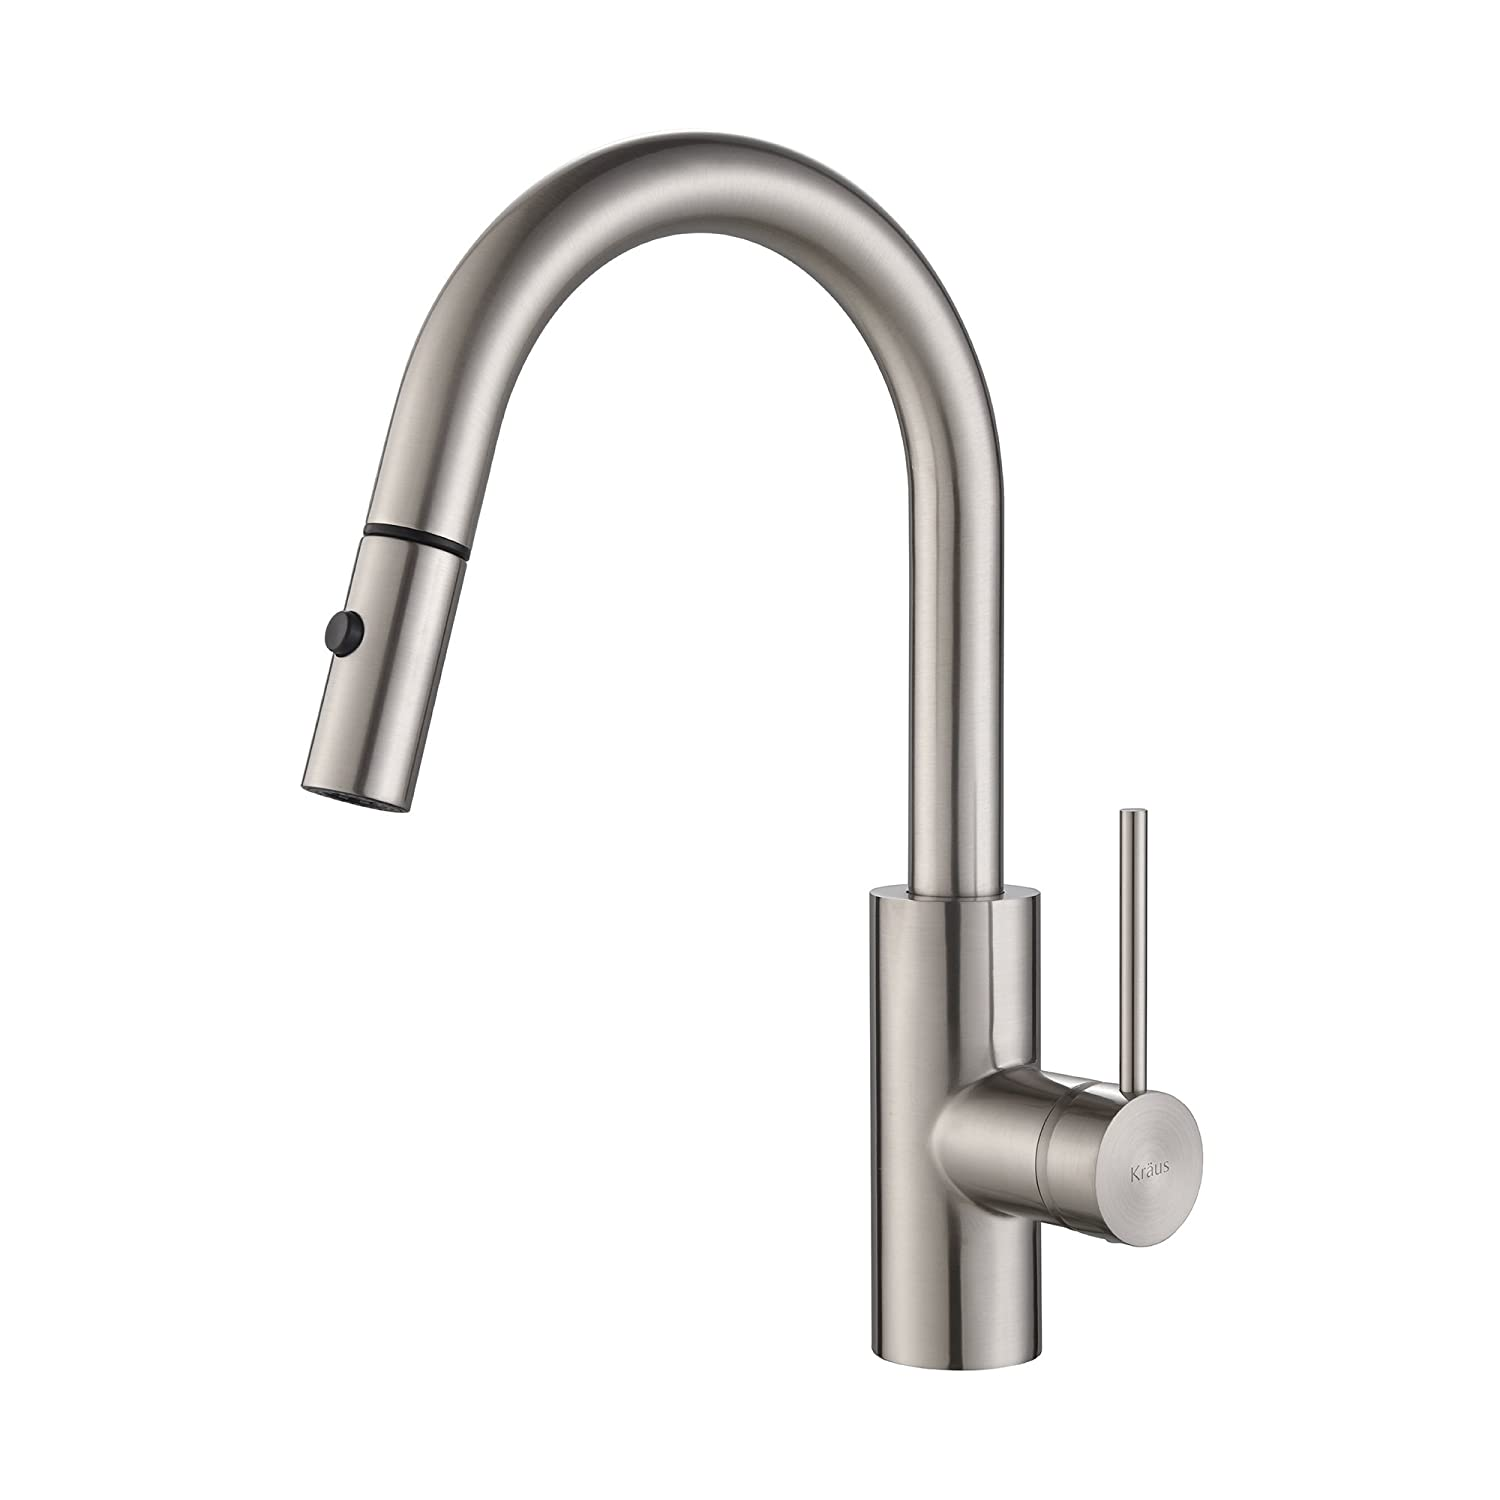 Kraus mateo modern kitchen faucet with coil pros and for Best kitchen sinks and faucets